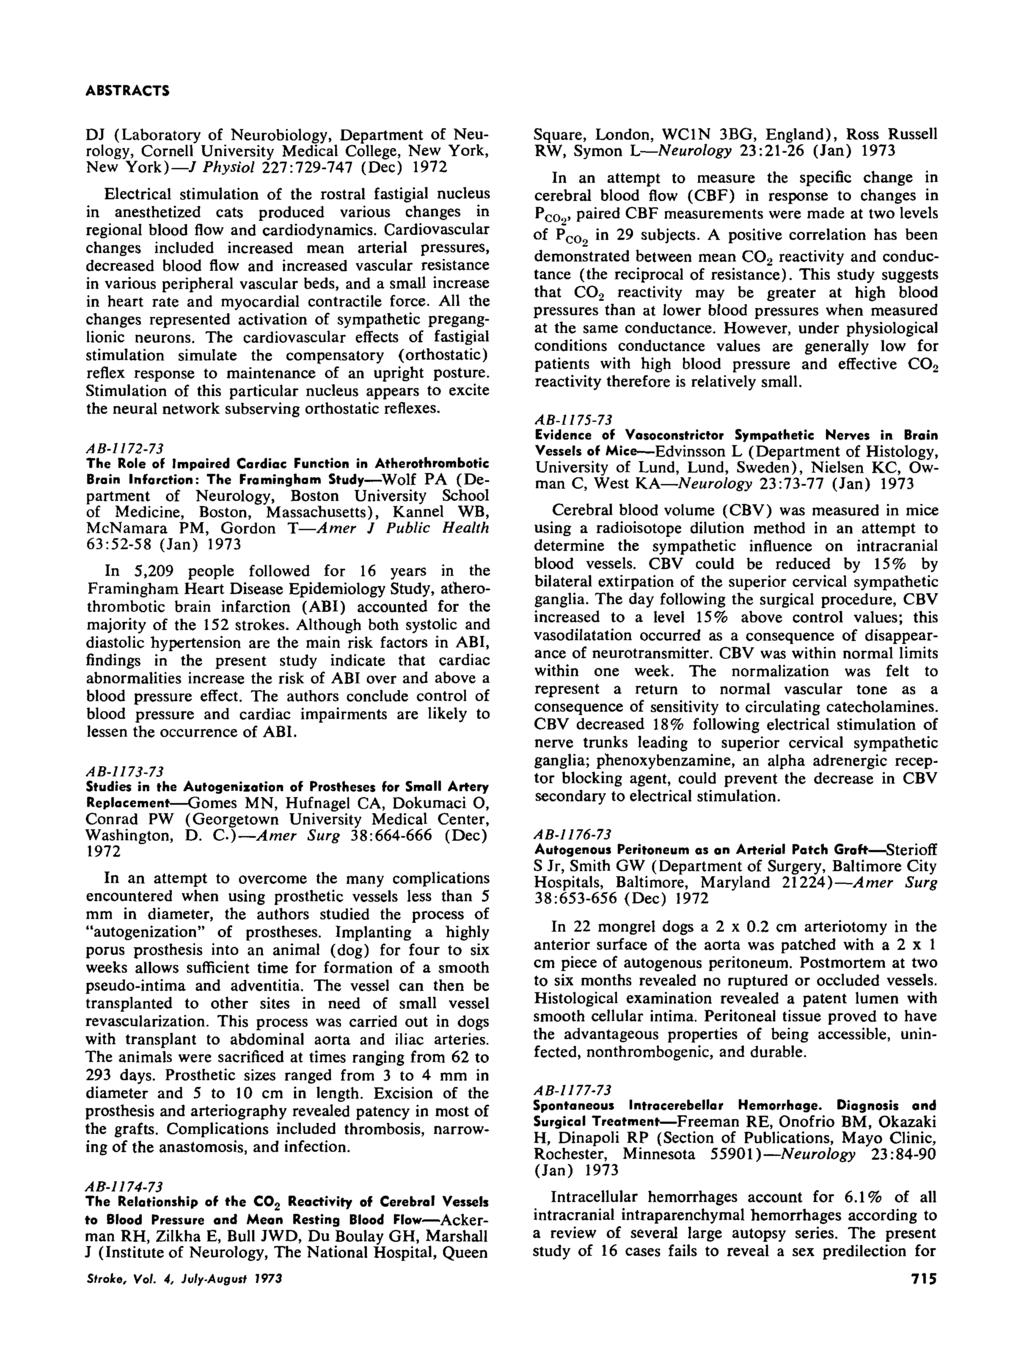 DJ (Laboratory of Neurobiology, Department of Neurology, Cornell University Medical College, New York, New York) / Physiol 227:729-747 (Dec) 1972 Electrical stimulation of the rostral fastigial